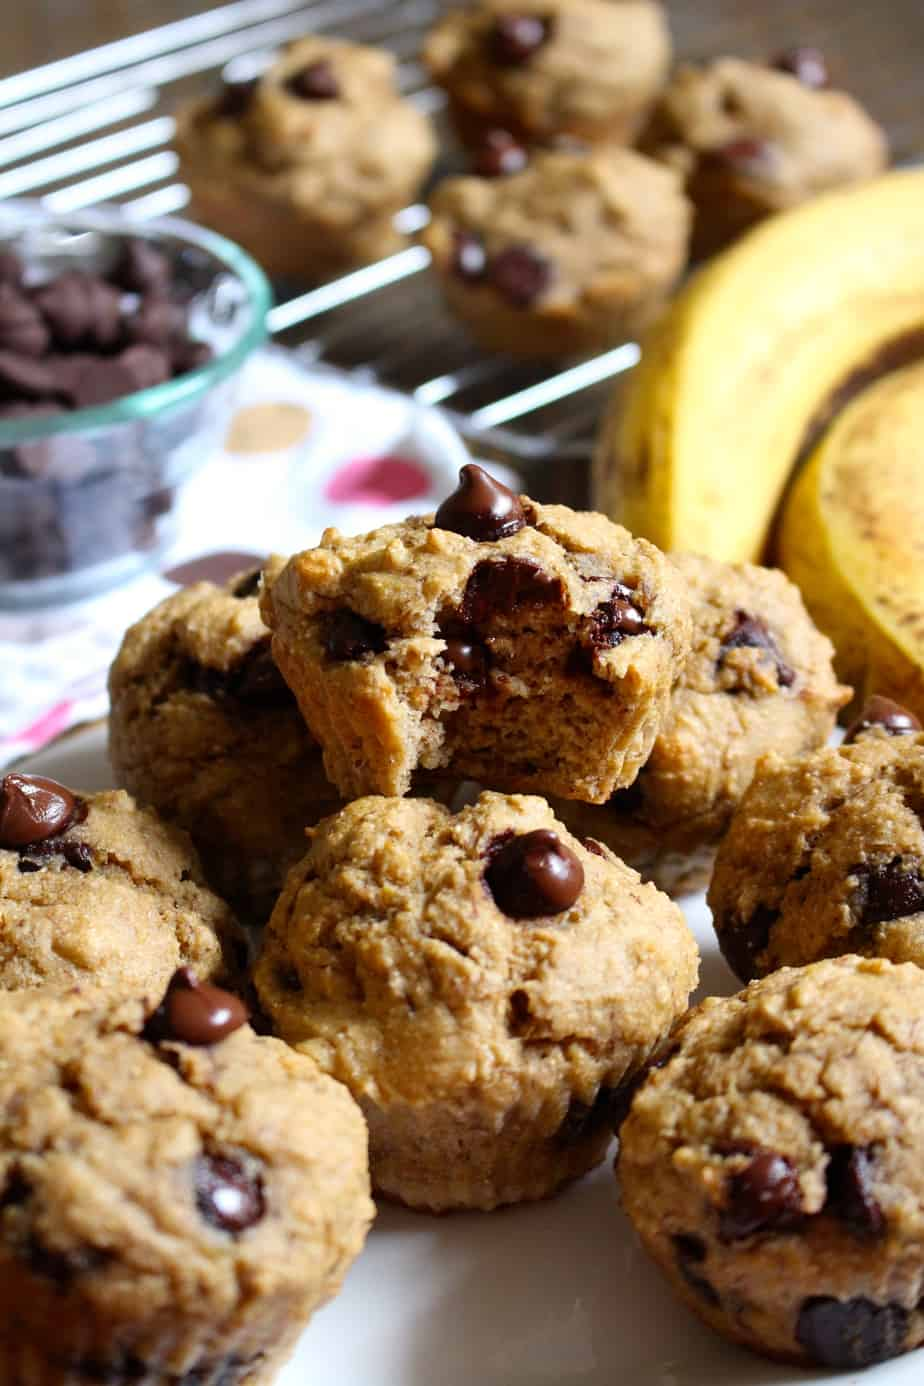 Chocolate Chip Banana Muffins (Whole Wheat) | Frugal Nutrition